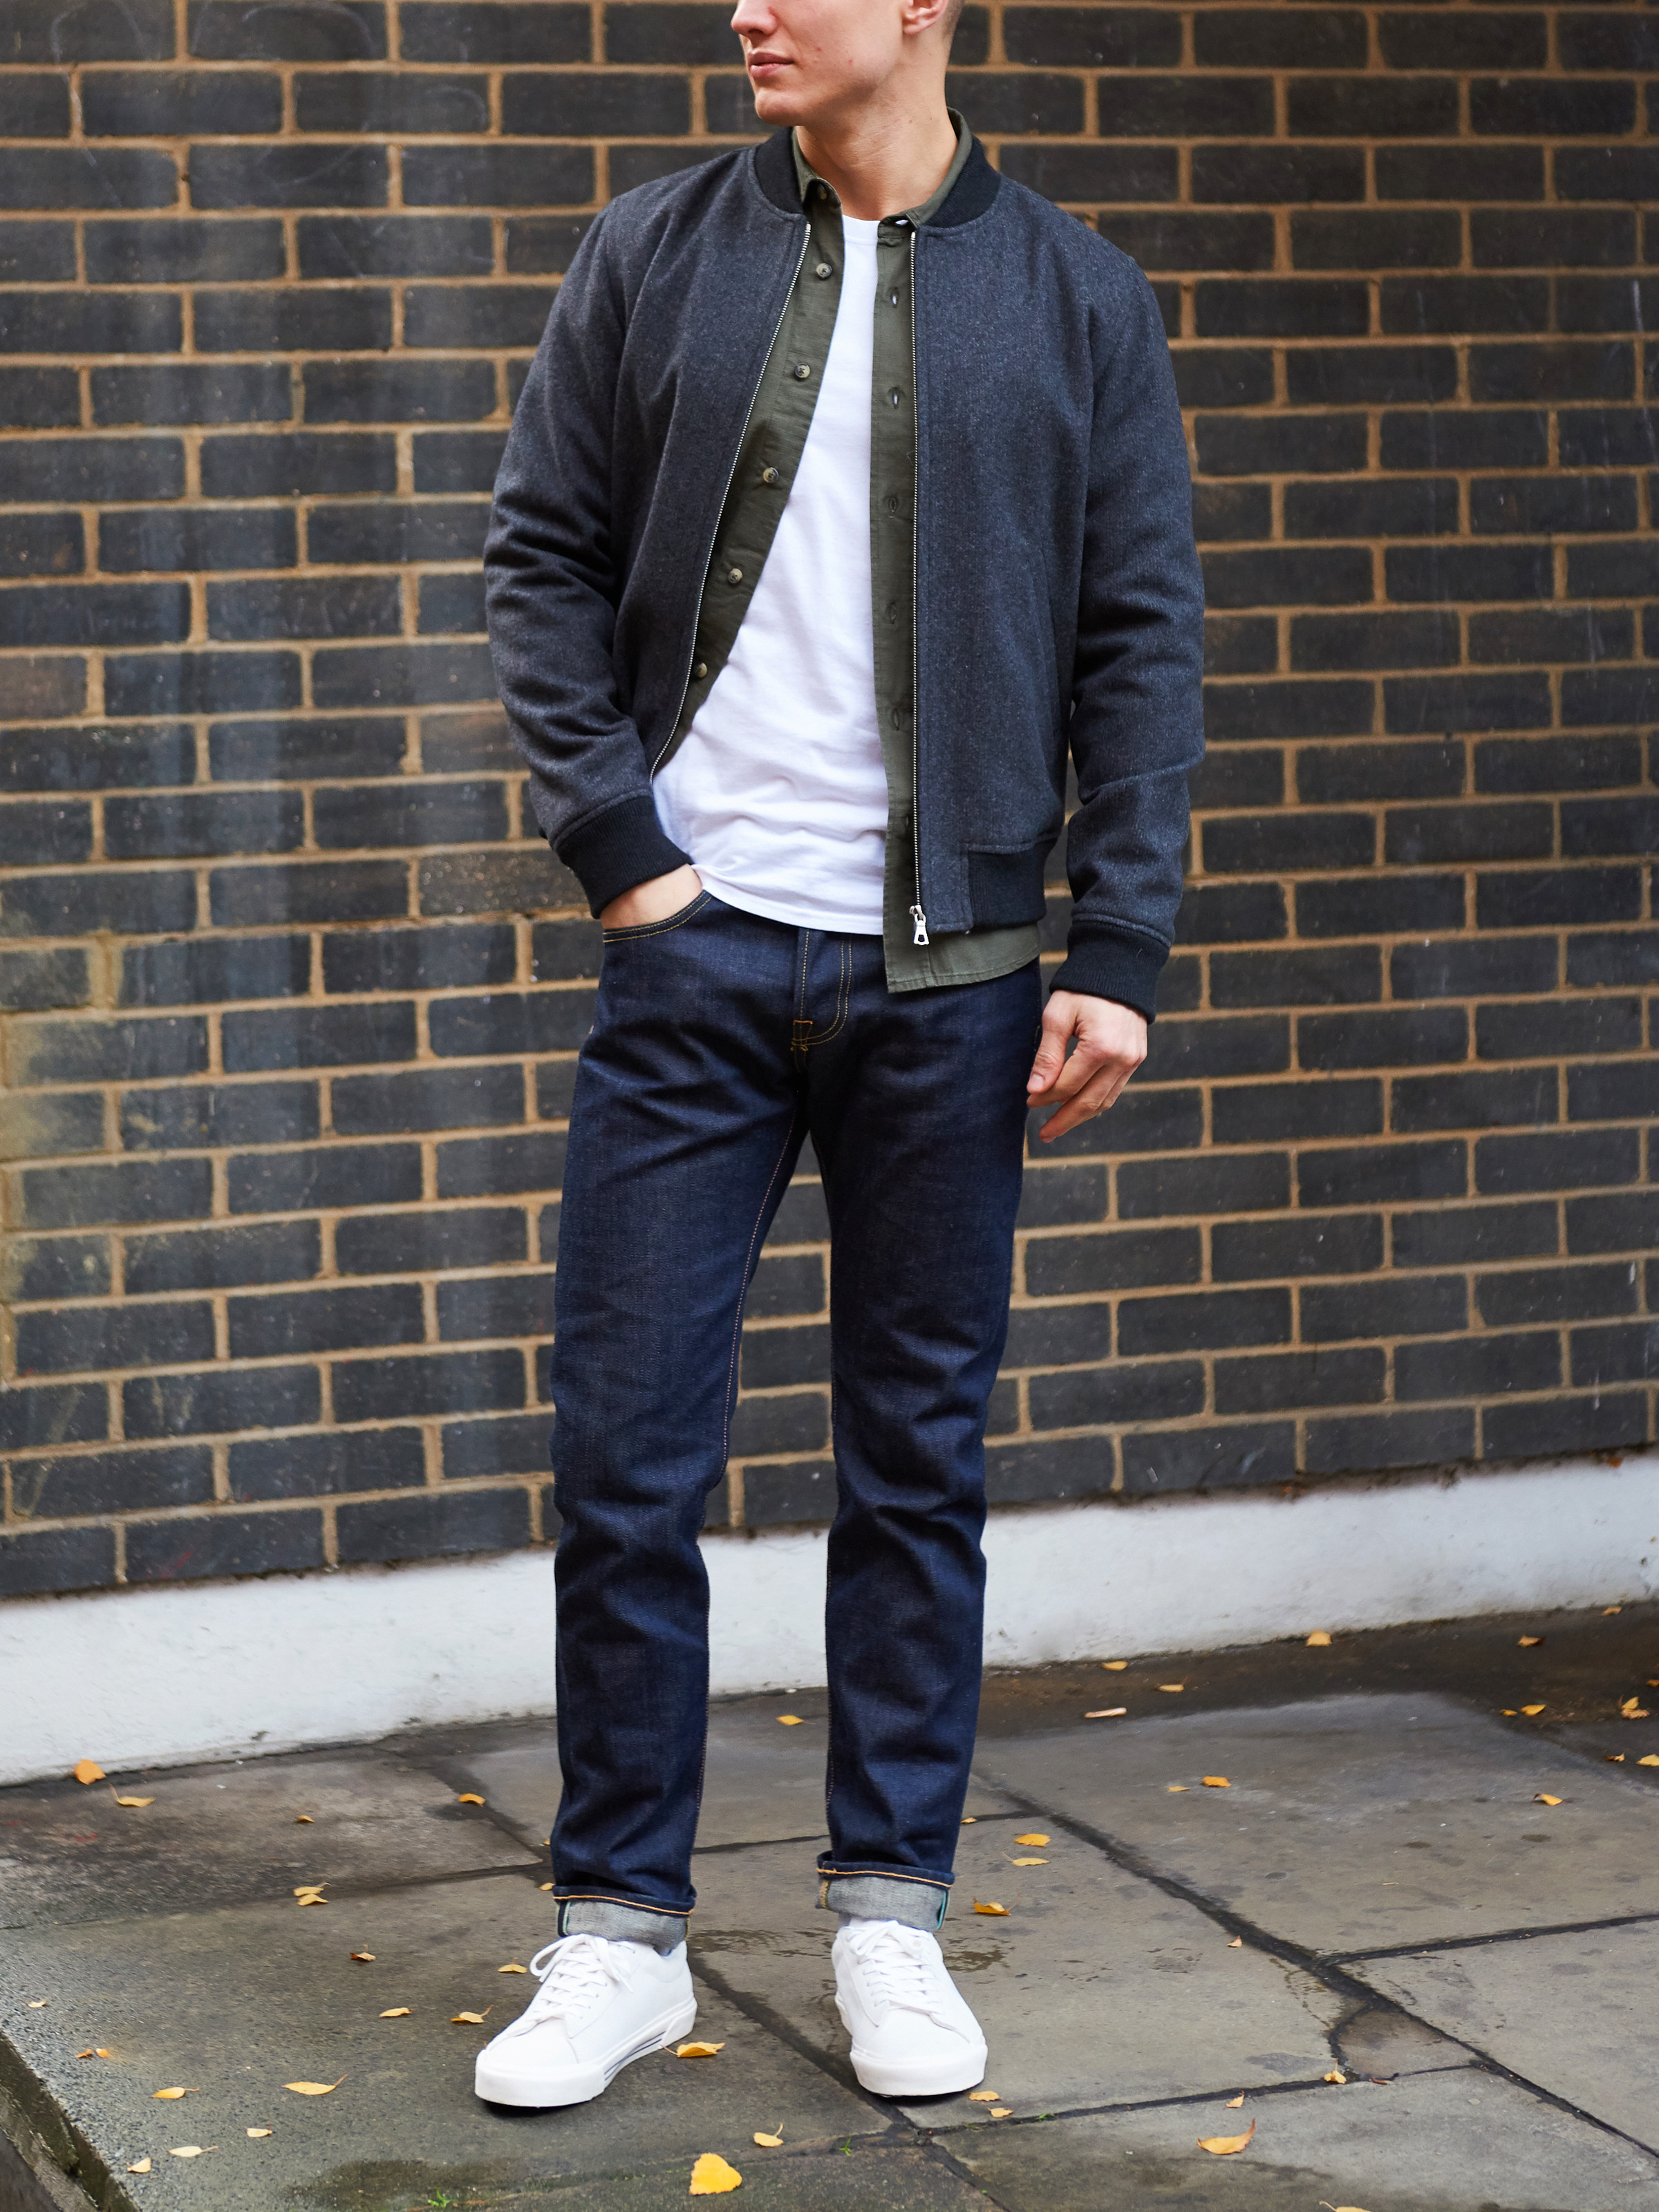 Men's outfit idea for 2021 with bomber jacket, overshirt, white crew neck t-shirt, dark blue jeans, white sneakers. Suitable for fall and winter.